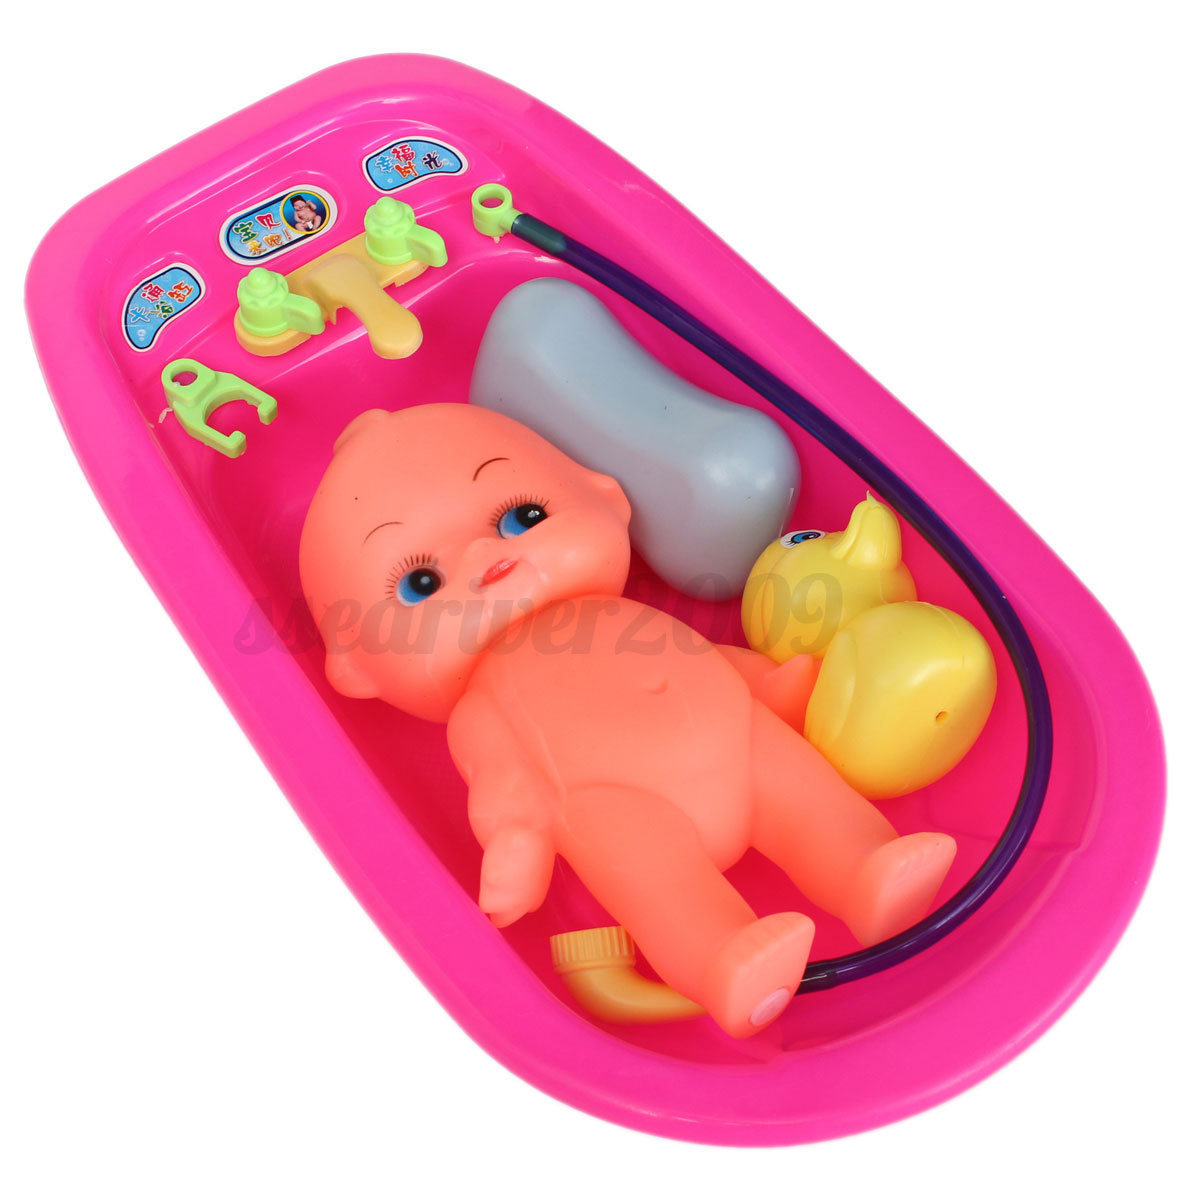 baby doll in bath tub with shower accessories set kids pretend role play toy new ebay. Black Bedroom Furniture Sets. Home Design Ideas